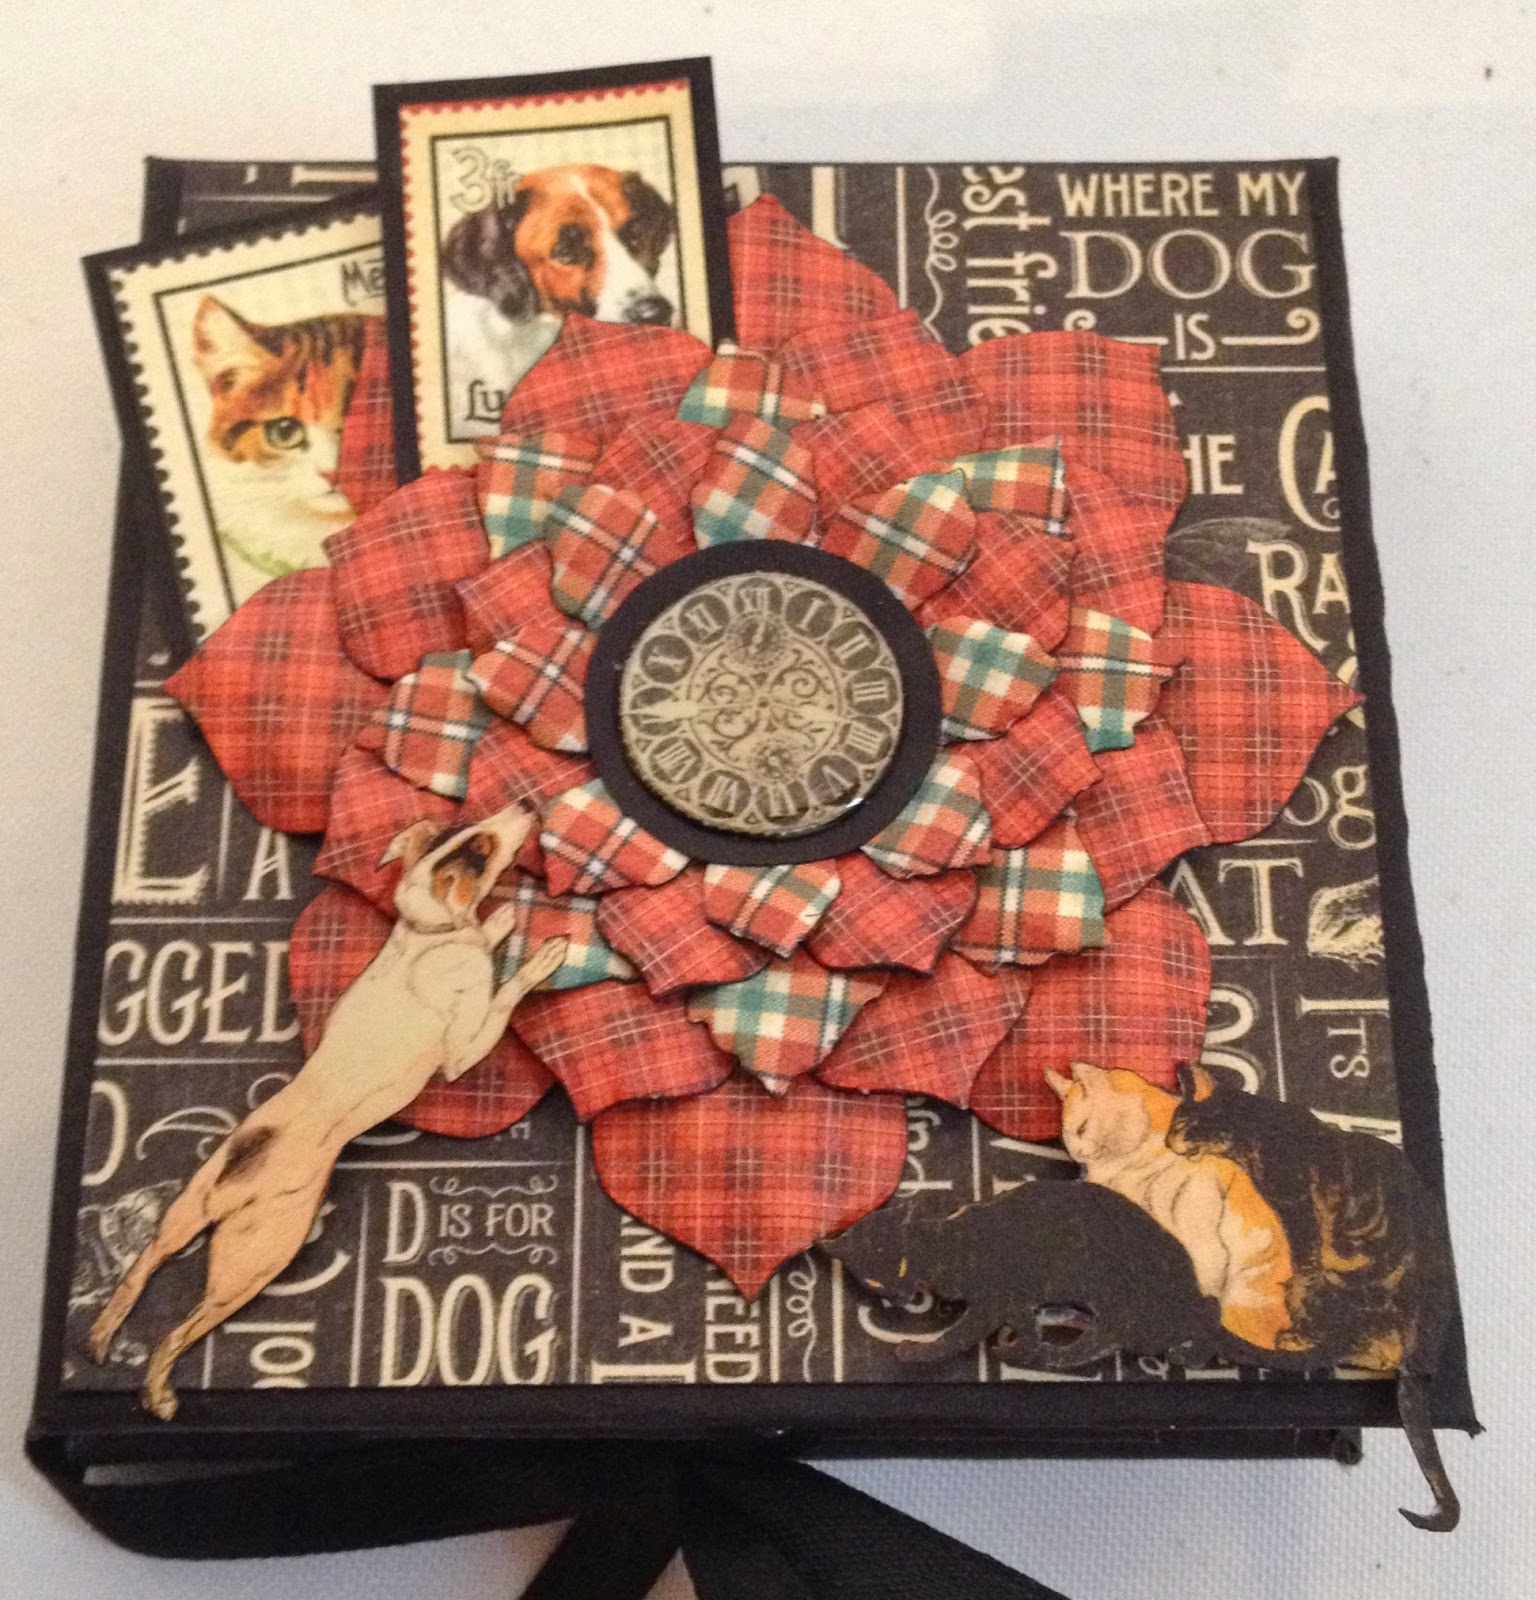 Scrapbook ideas for dogs - Also Made An Other Mini Album In A Sewing Theme With The Same Construction Using An Eerie Tale Collection